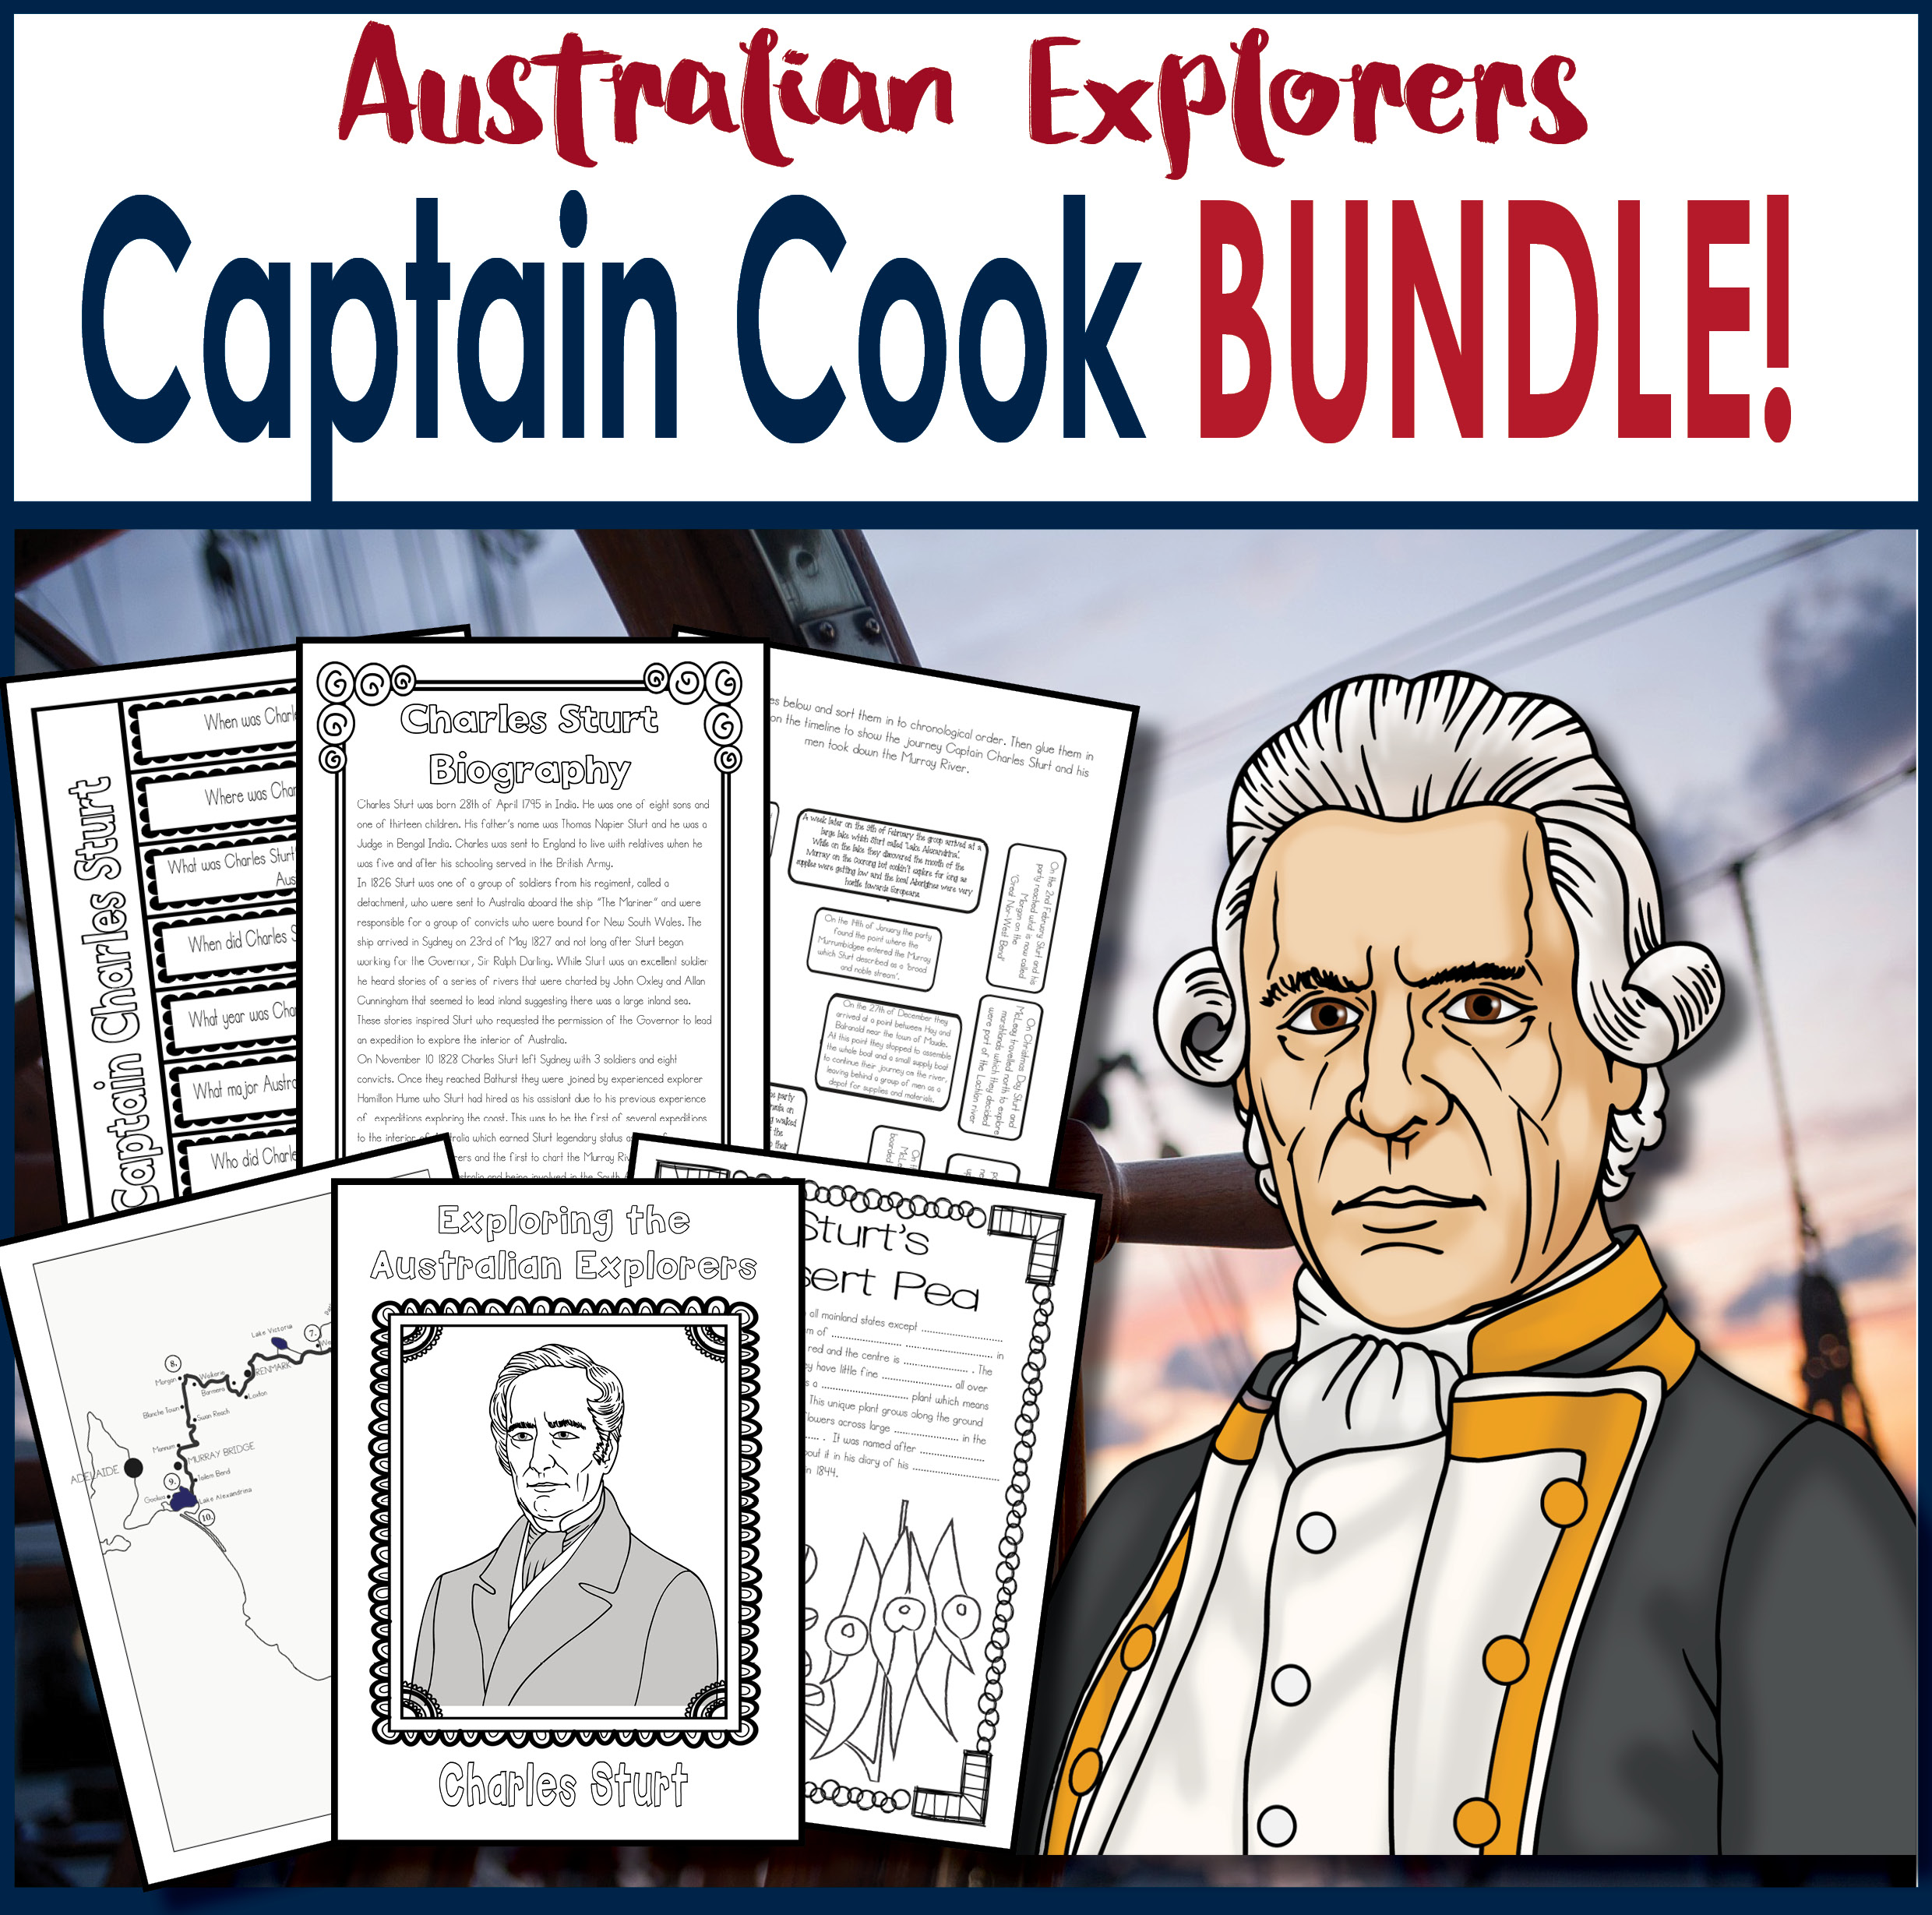 Captain James Cook BUNDLE Save 30%